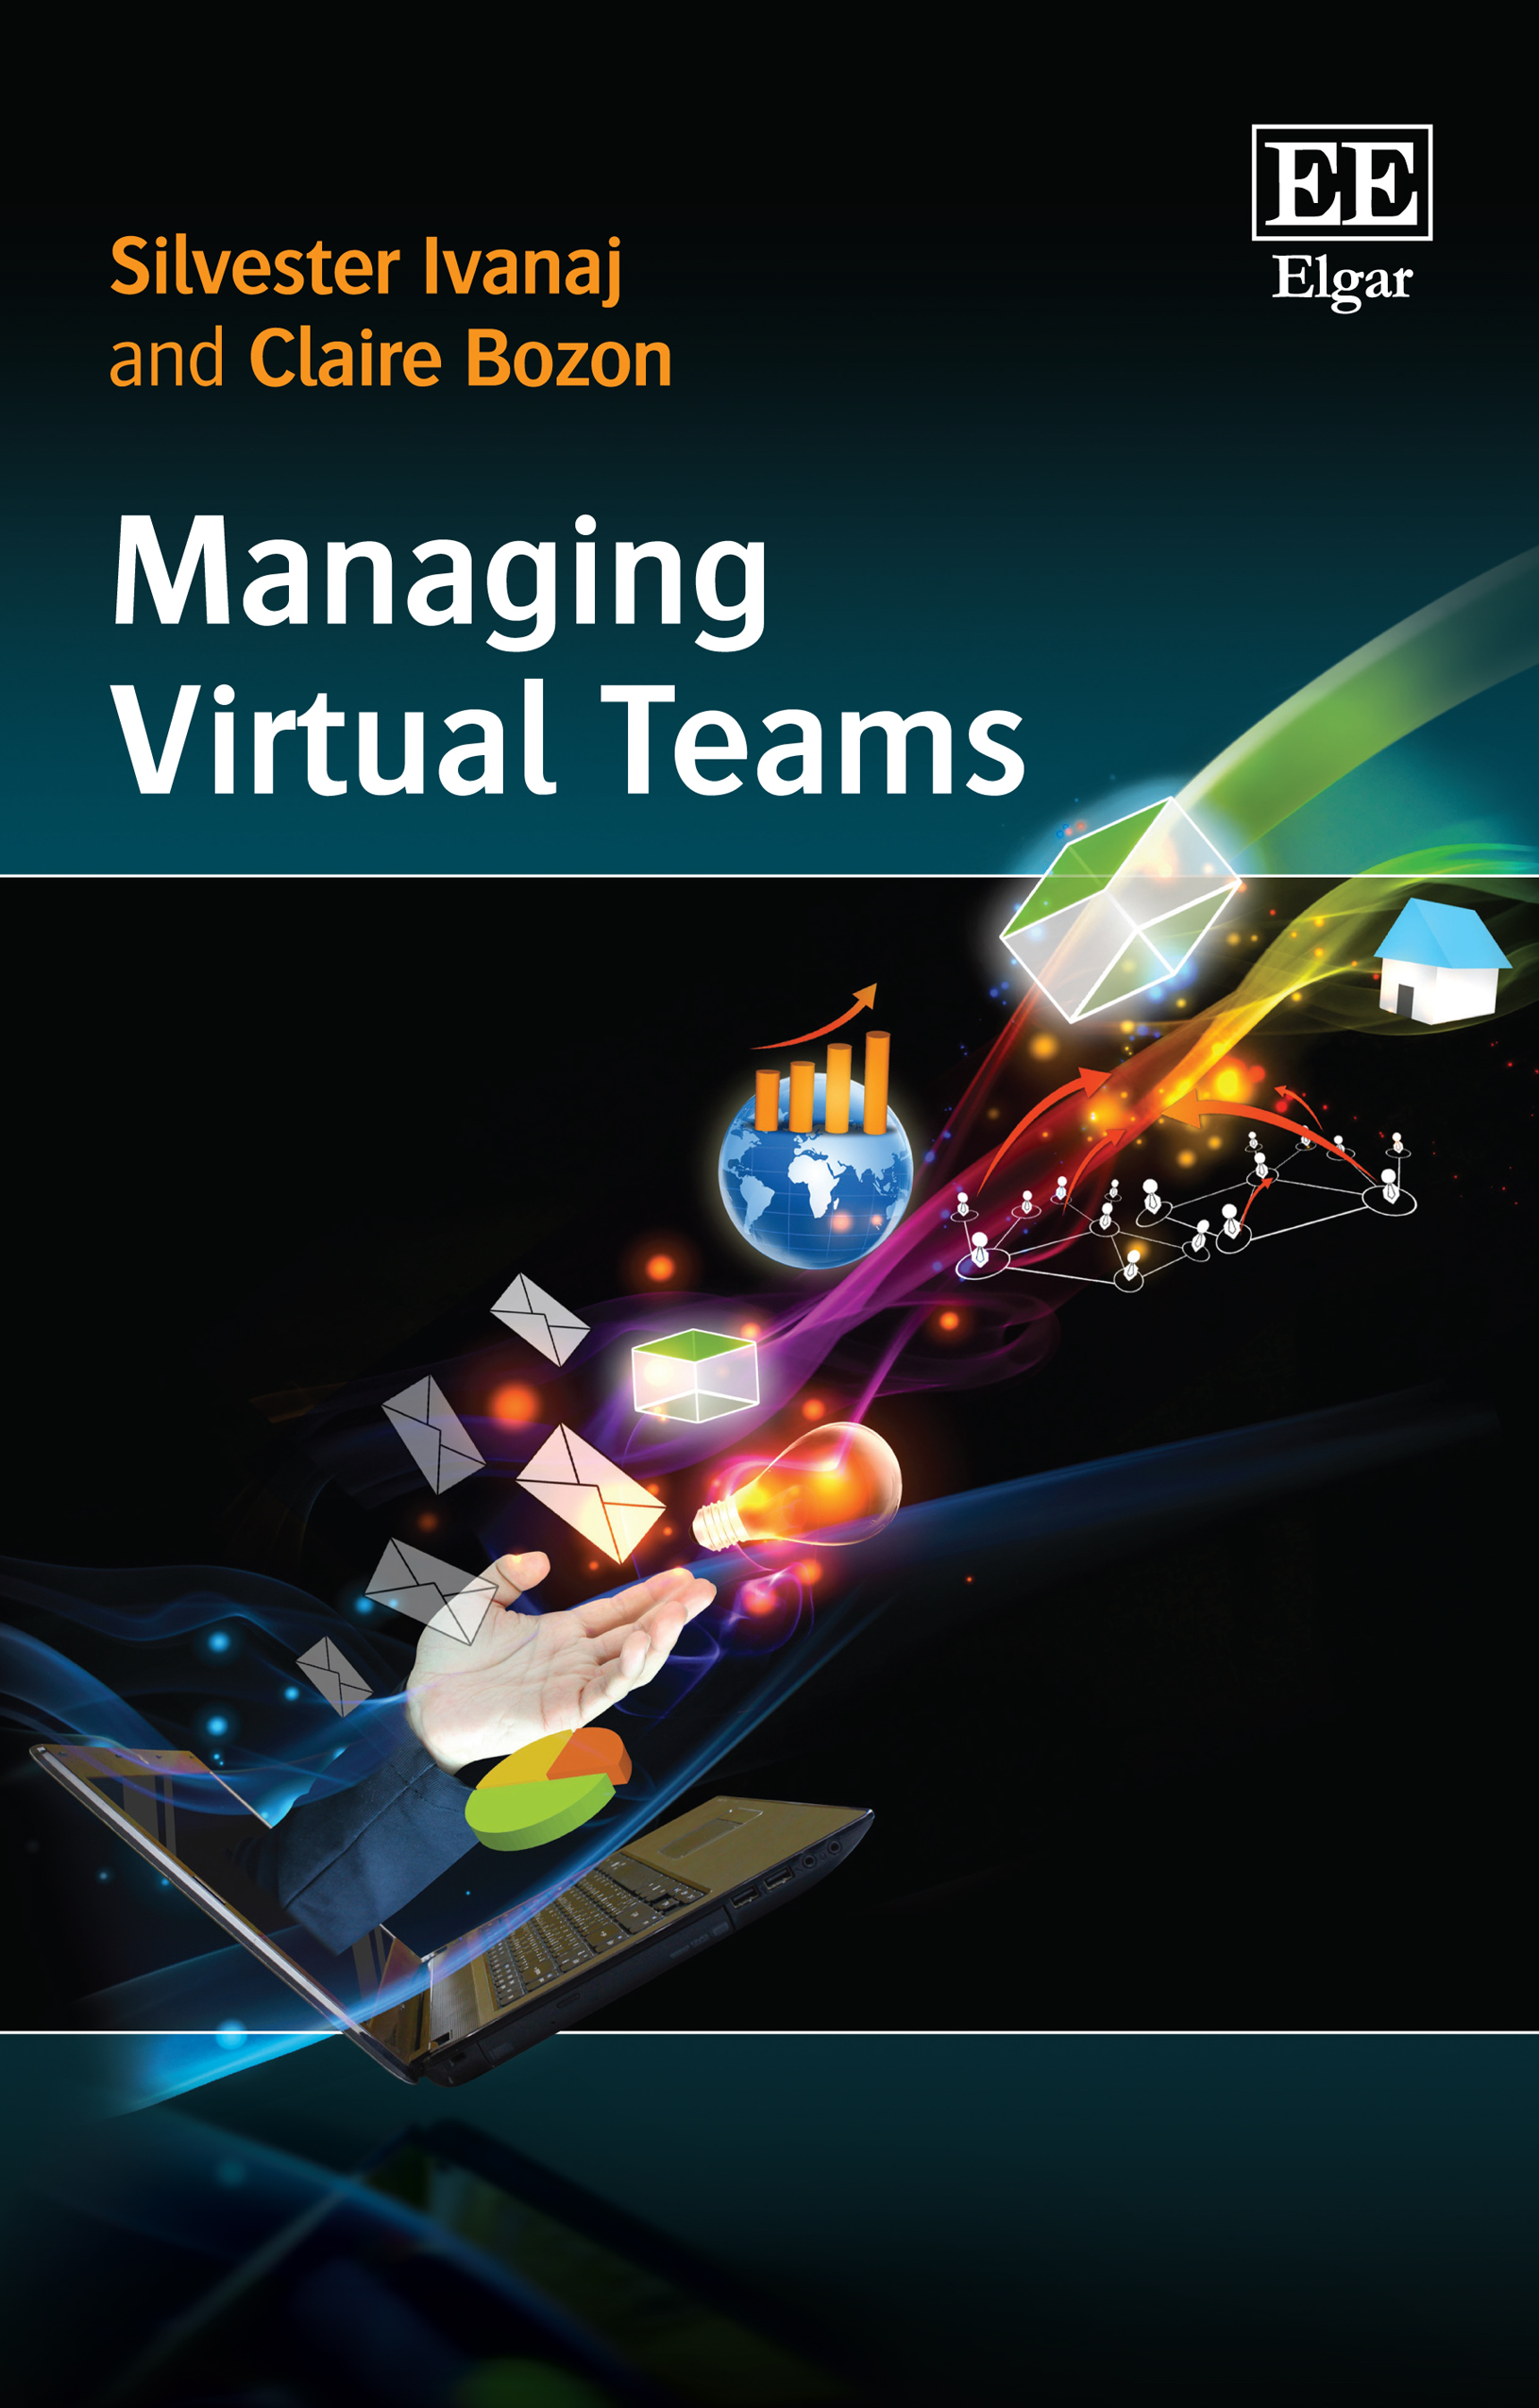 Download Ebook Managing Virtual Teams by Silvester Ivanaj Pdf